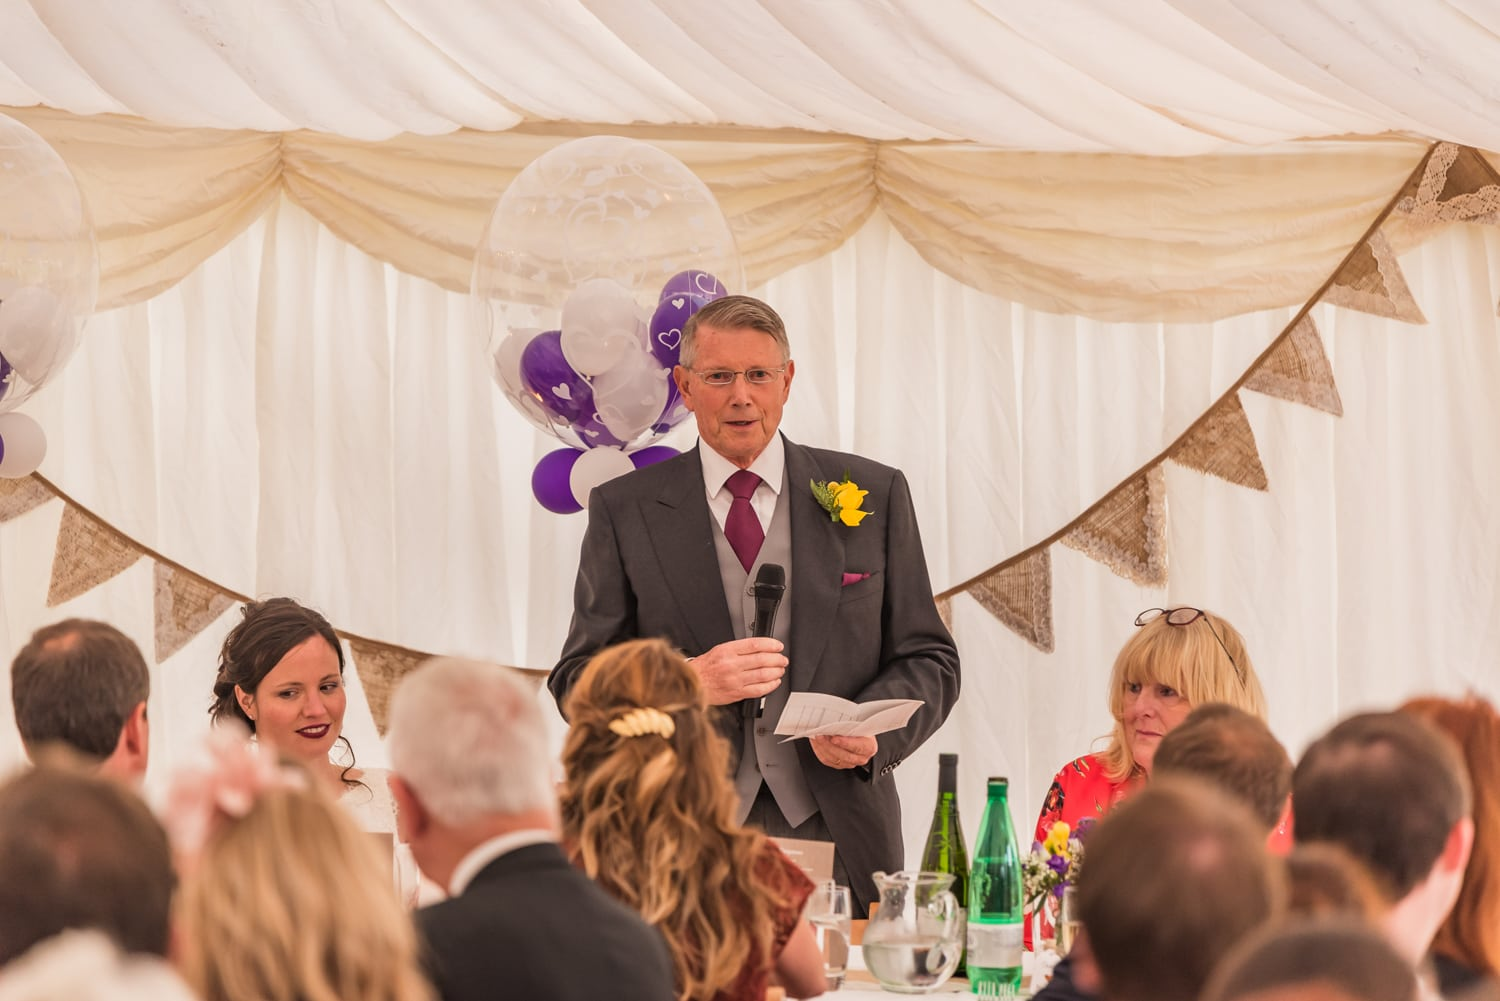 089-father-of-bride-speech_1.jpg